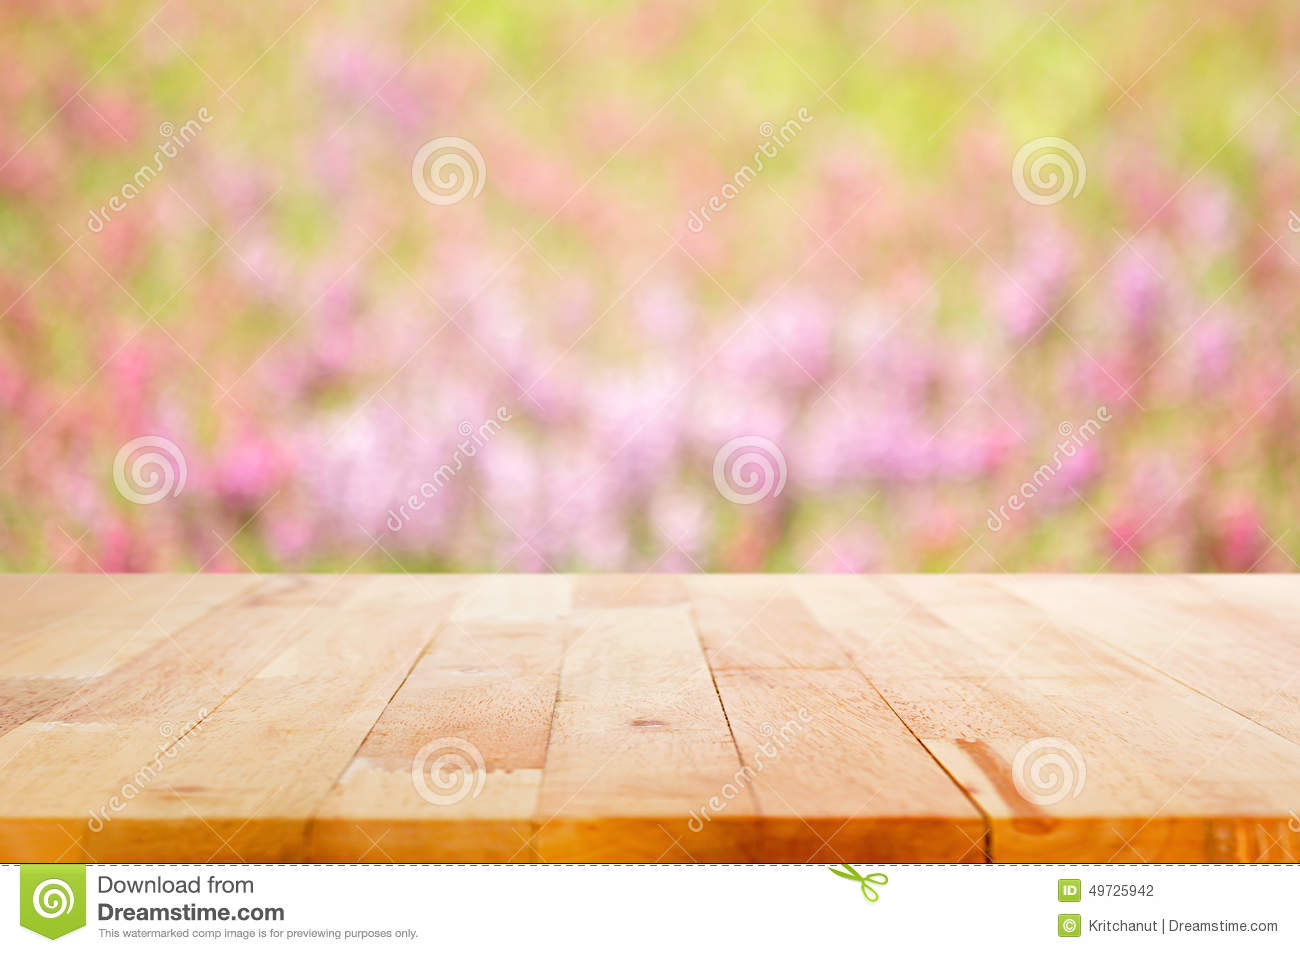 Wood Table Top On Blur Flower Garden Background Stock Photo - Image ...